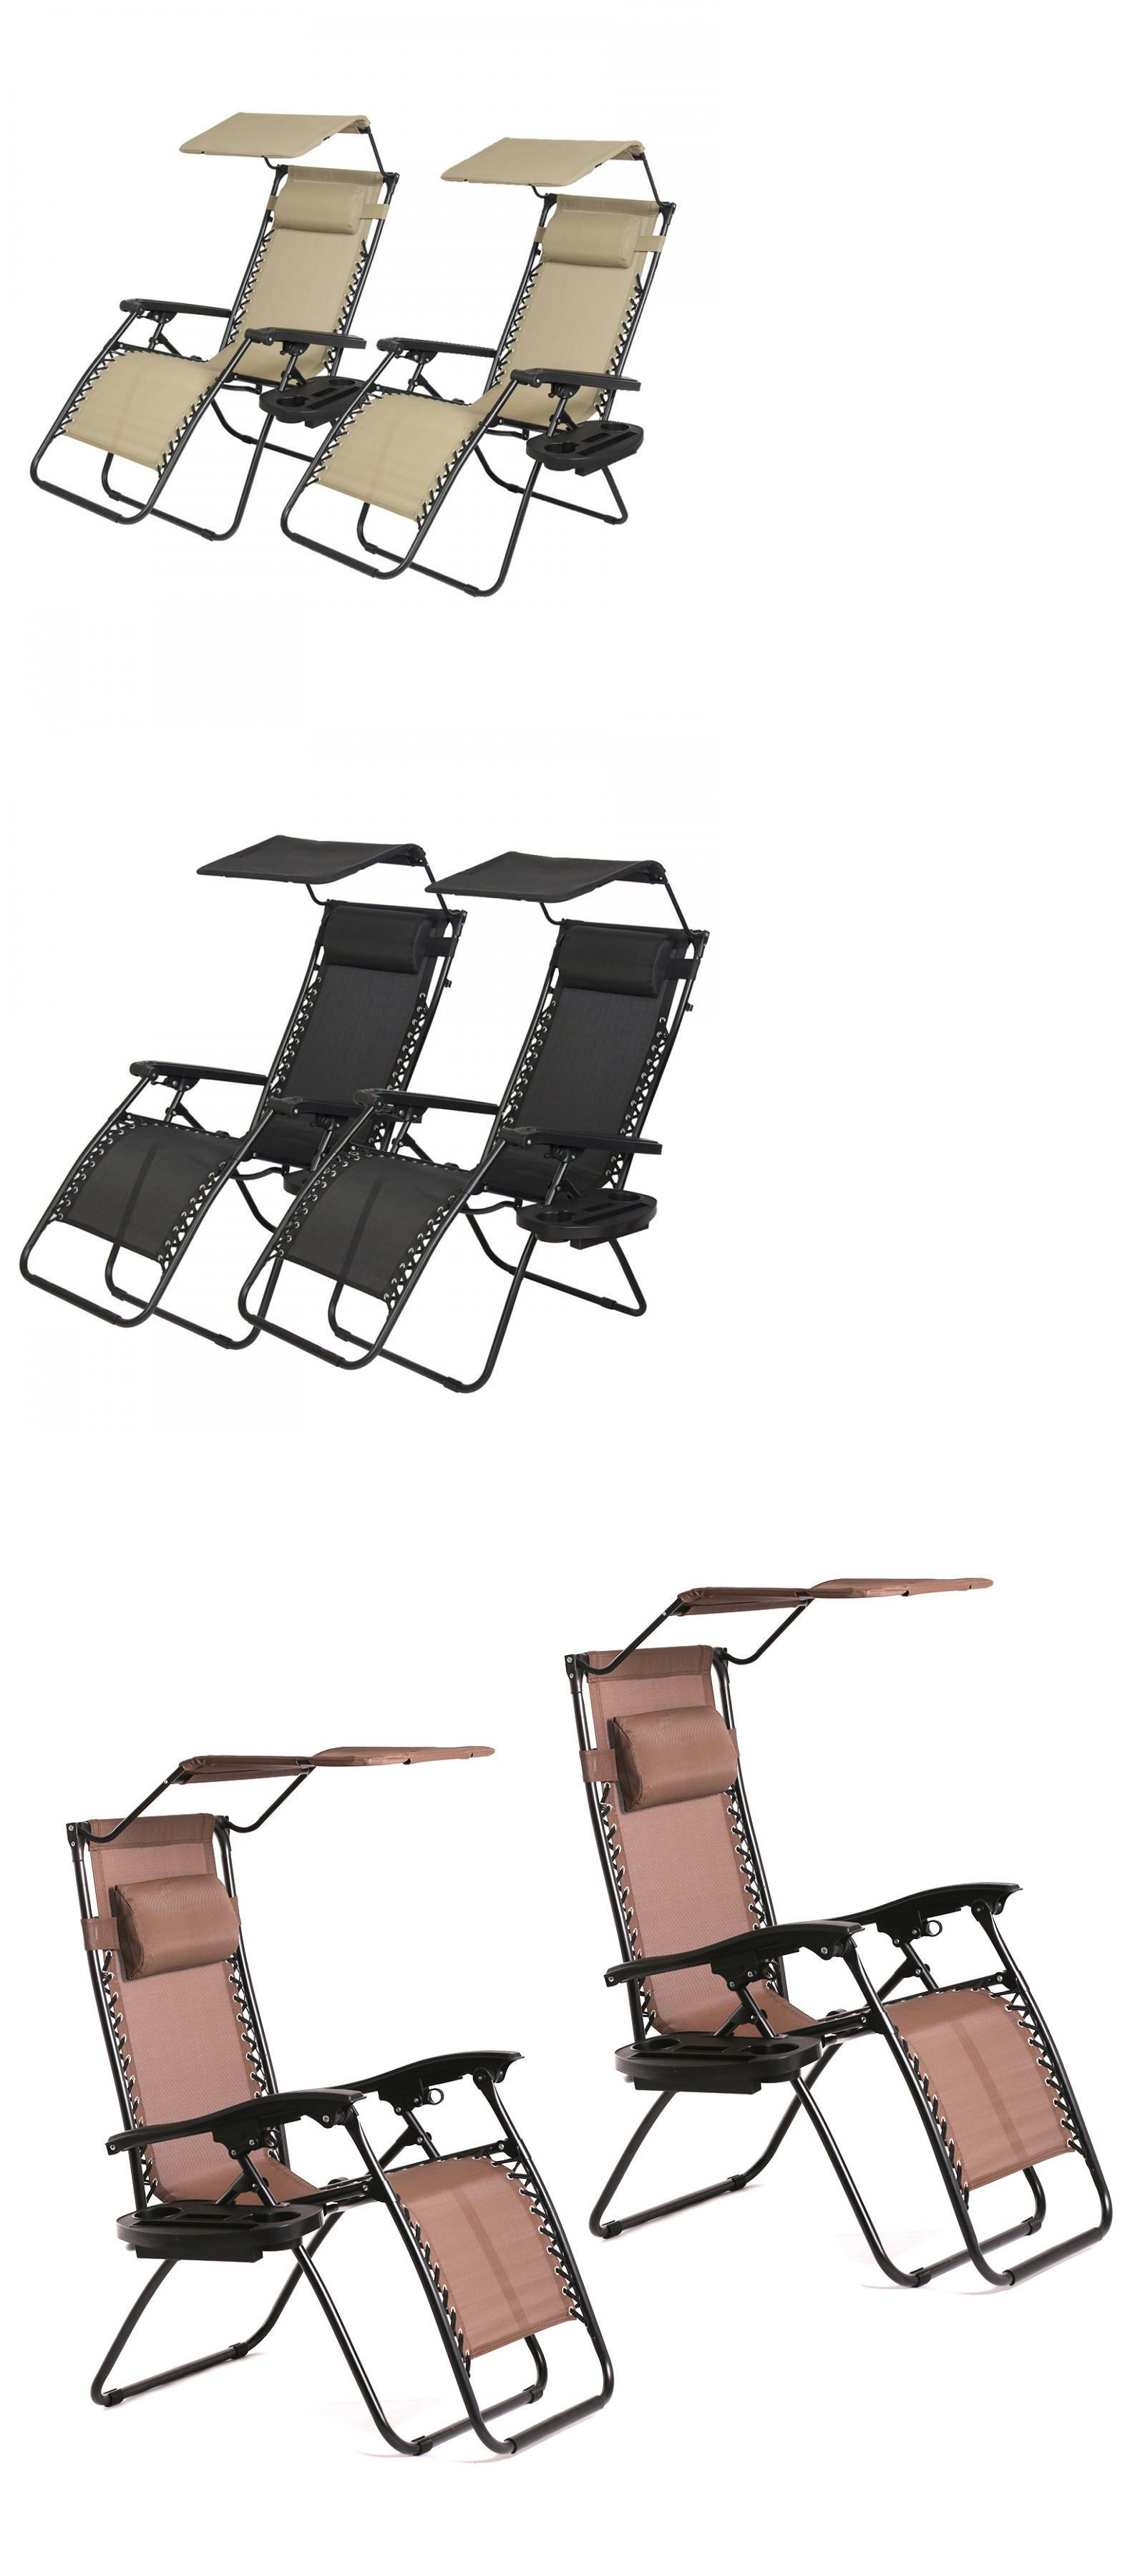 Farm and garden new pcs zero gravity chair lounge patio chairs